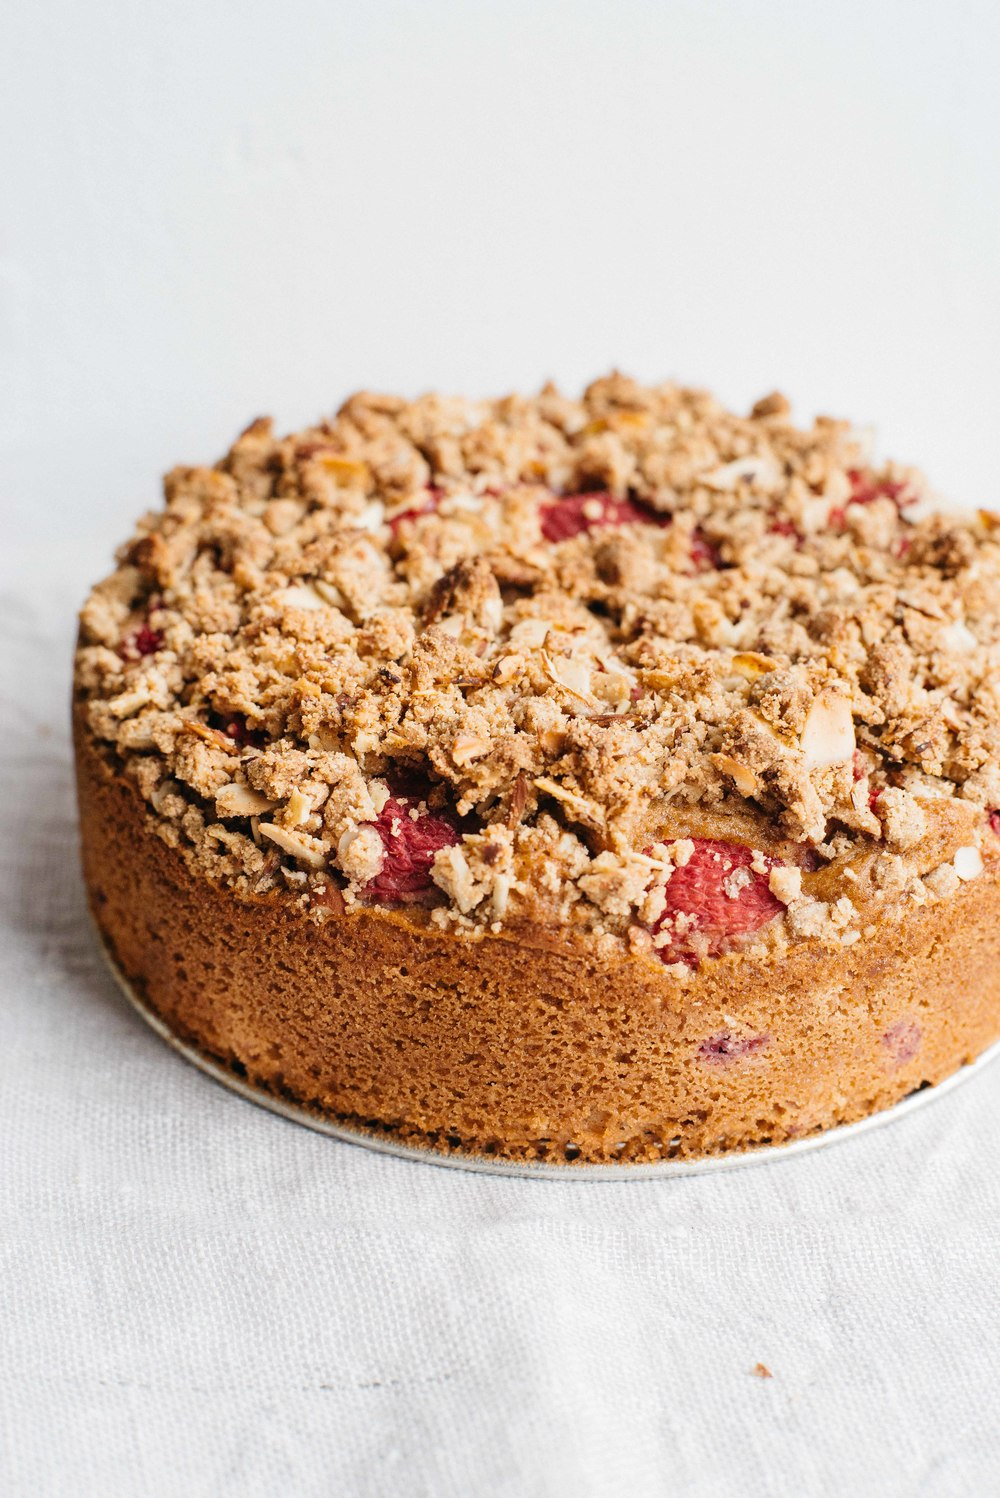 raspberry-currant yogurt crumble cake (gf + df) | dolly and oatmeal